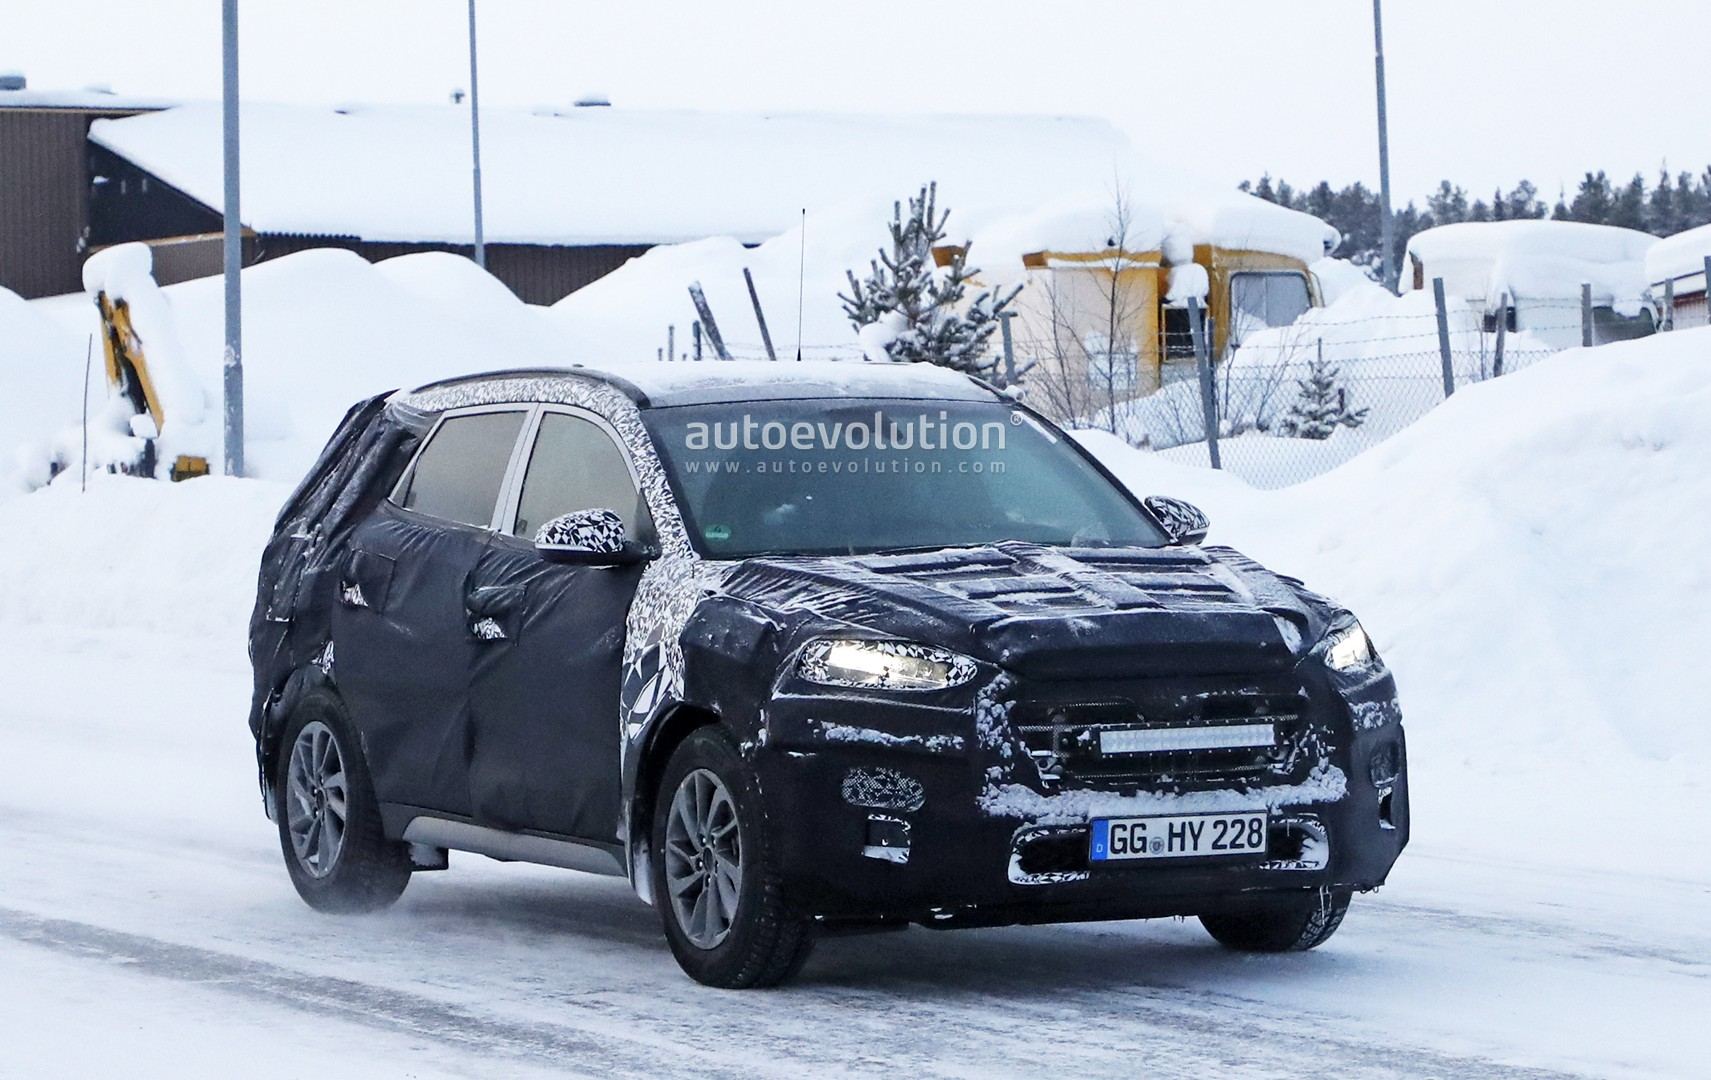 2019 hyundai tucson facelift spied undergoing winter testing autoevolution. Black Bedroom Furniture Sets. Home Design Ideas